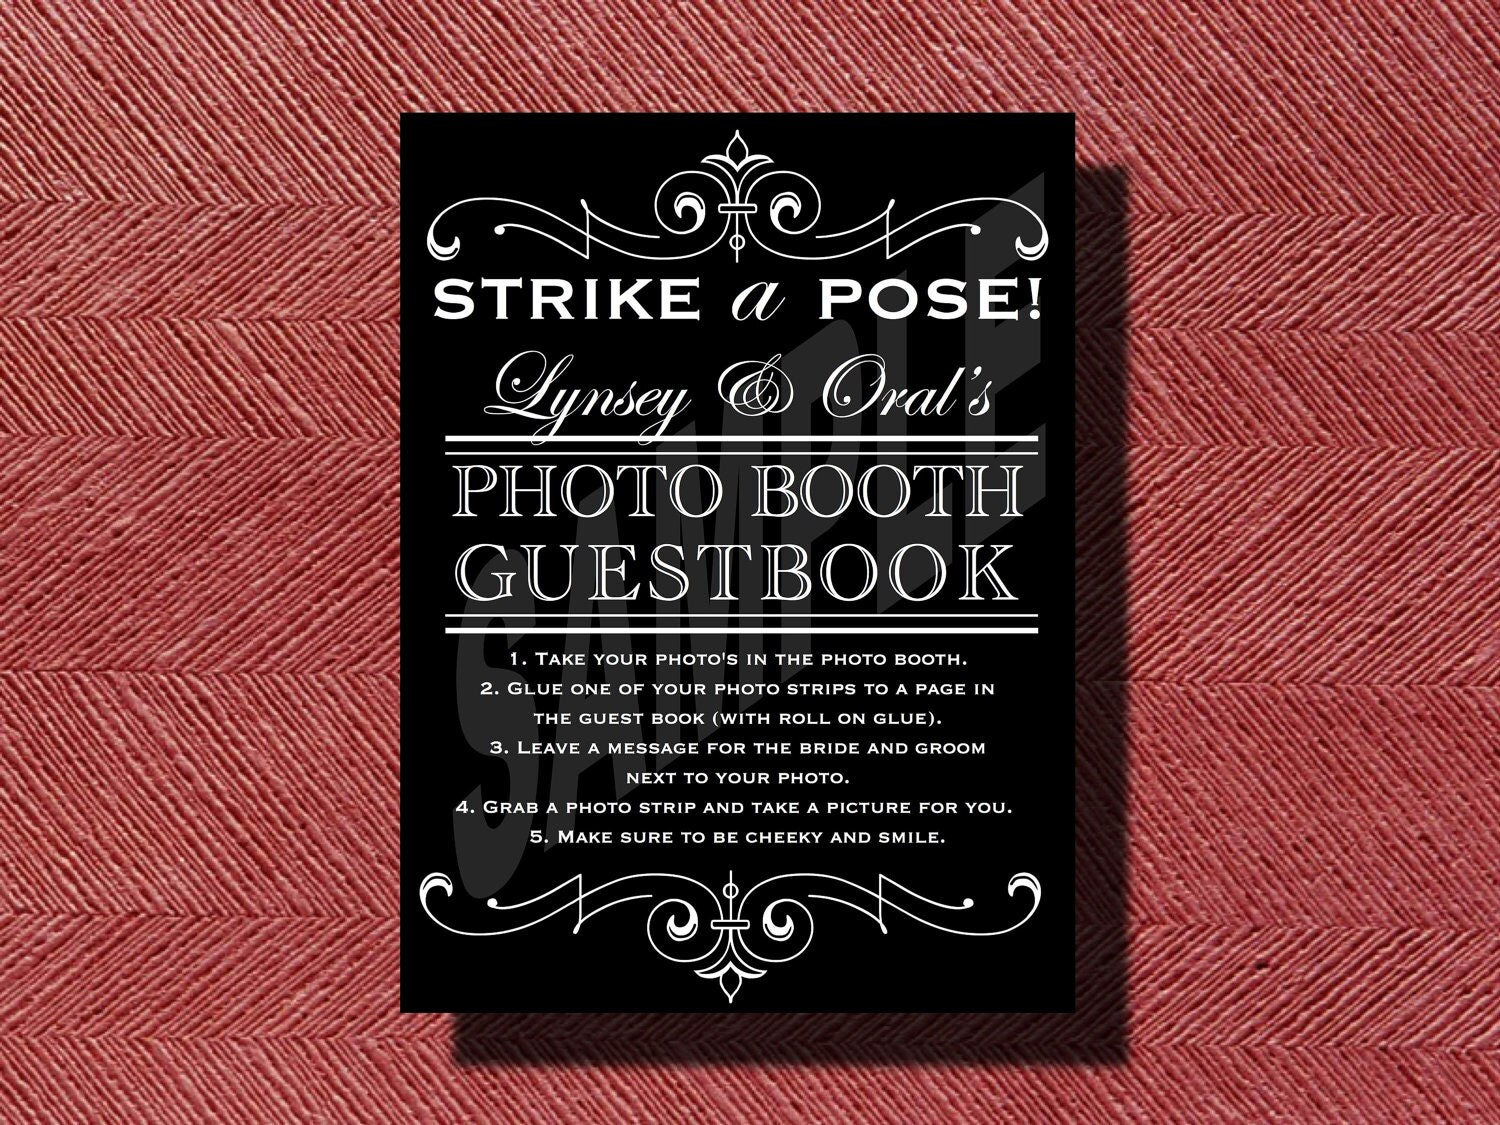 Wedding photo booth guestbook sign for Photo wedding guest book